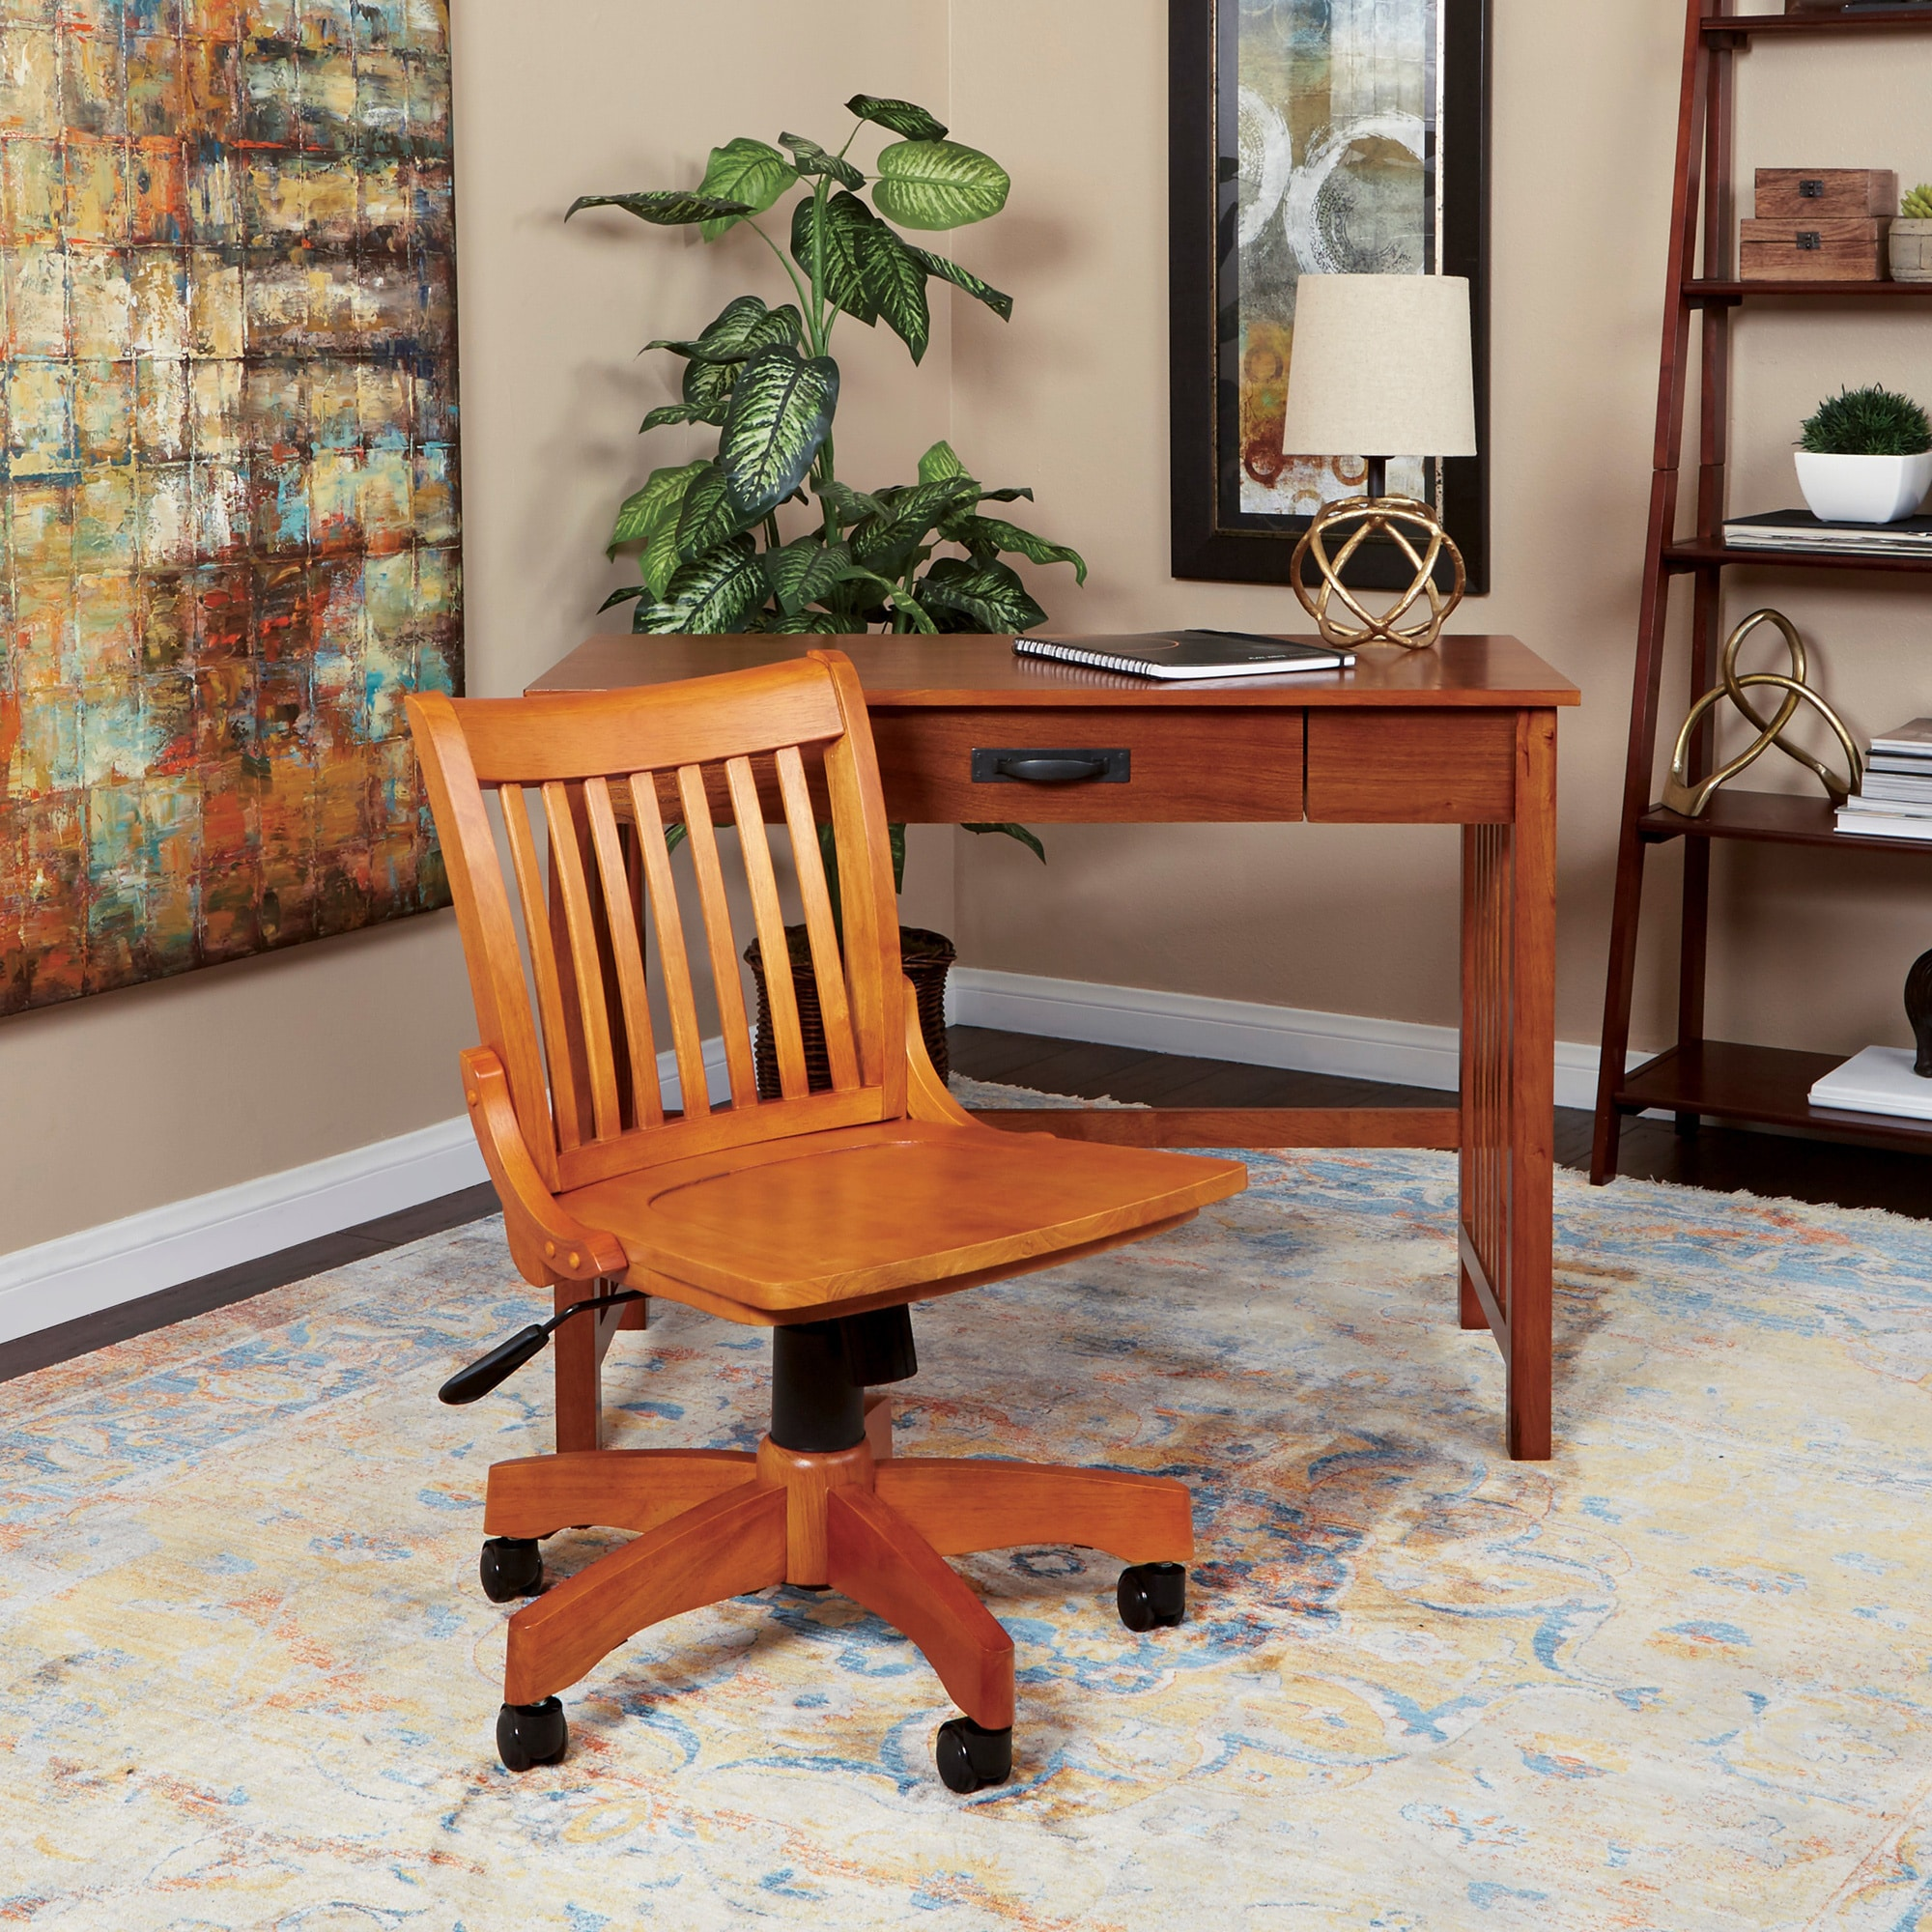 office wood desk. Copper Grove Hakai Wooden Bankers Chair - Free Shipping Today Overstock 11166344 Office Wood Desk S